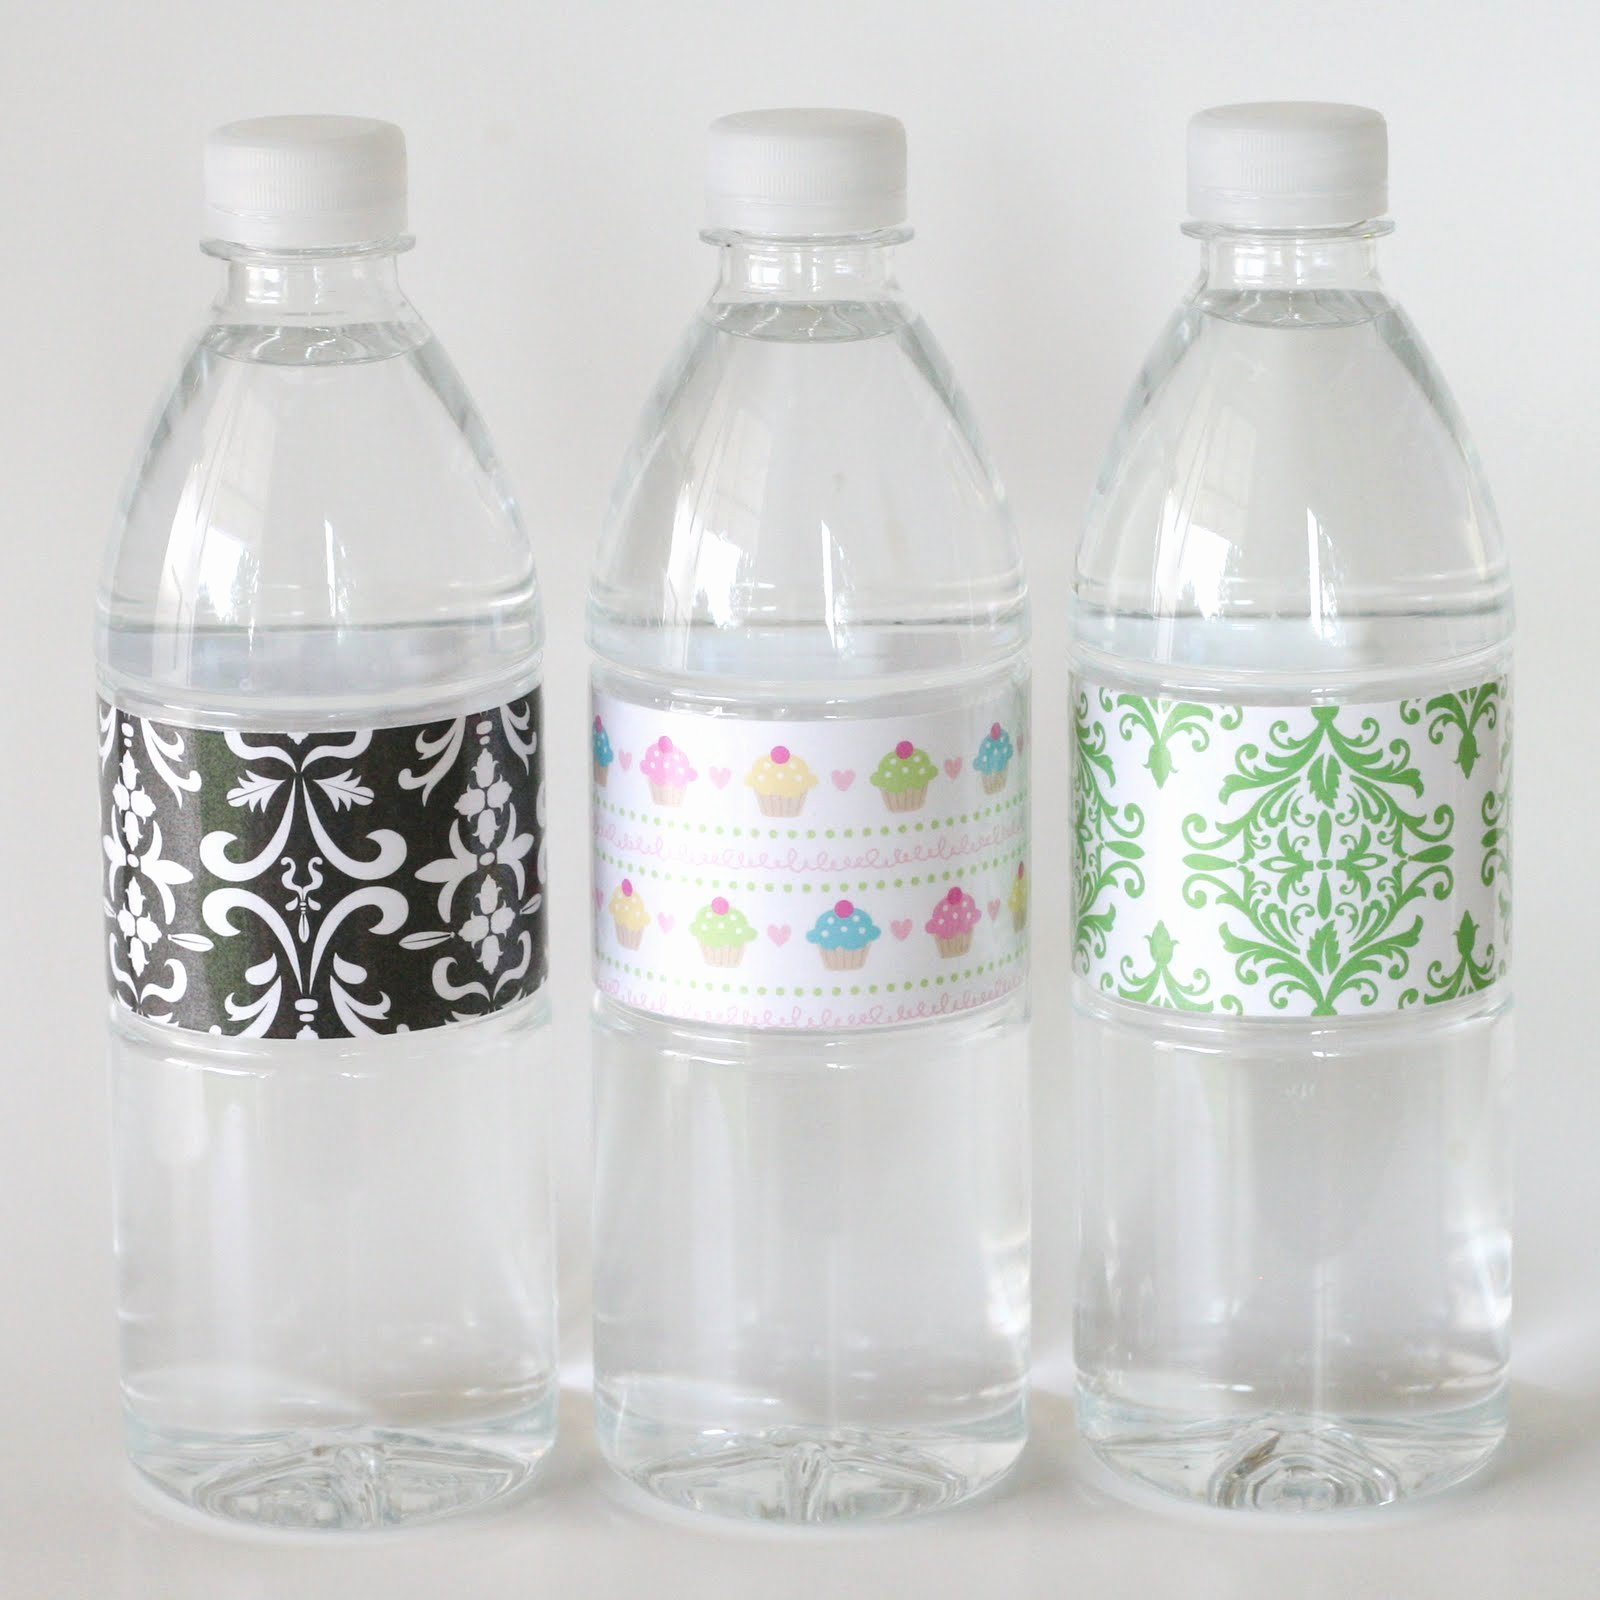 Free Water Bottle Labels Lovely How to Make Custom Water Bottle Labels Glorious Treats